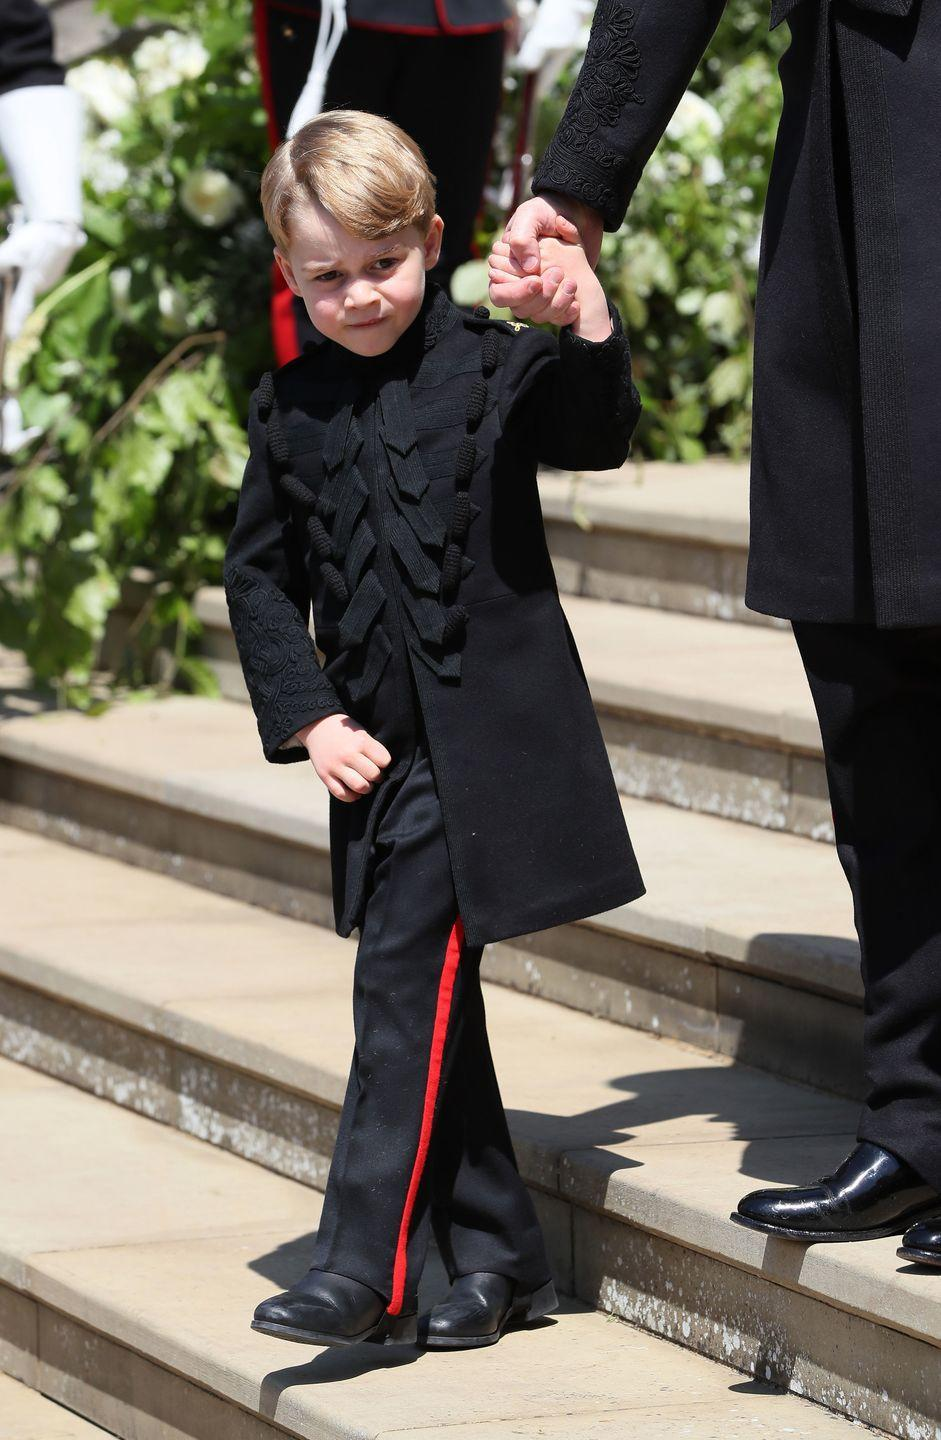 """<p>In the royal family, black is a color that is reserved for mourning, so members of the family, including children, are restricted from wearing it to <a href=""""https://www.whowhatwear.com/royal-family-wardrobe"""" rel=""""nofollow noopener"""" target=""""_blank"""" data-ylk=""""slk:daytime events"""" class=""""link rapid-noclick-resp"""">daytime events</a>. One exception? The military suit Prince George donned as the page boy at his uncle's wedding. </p>"""